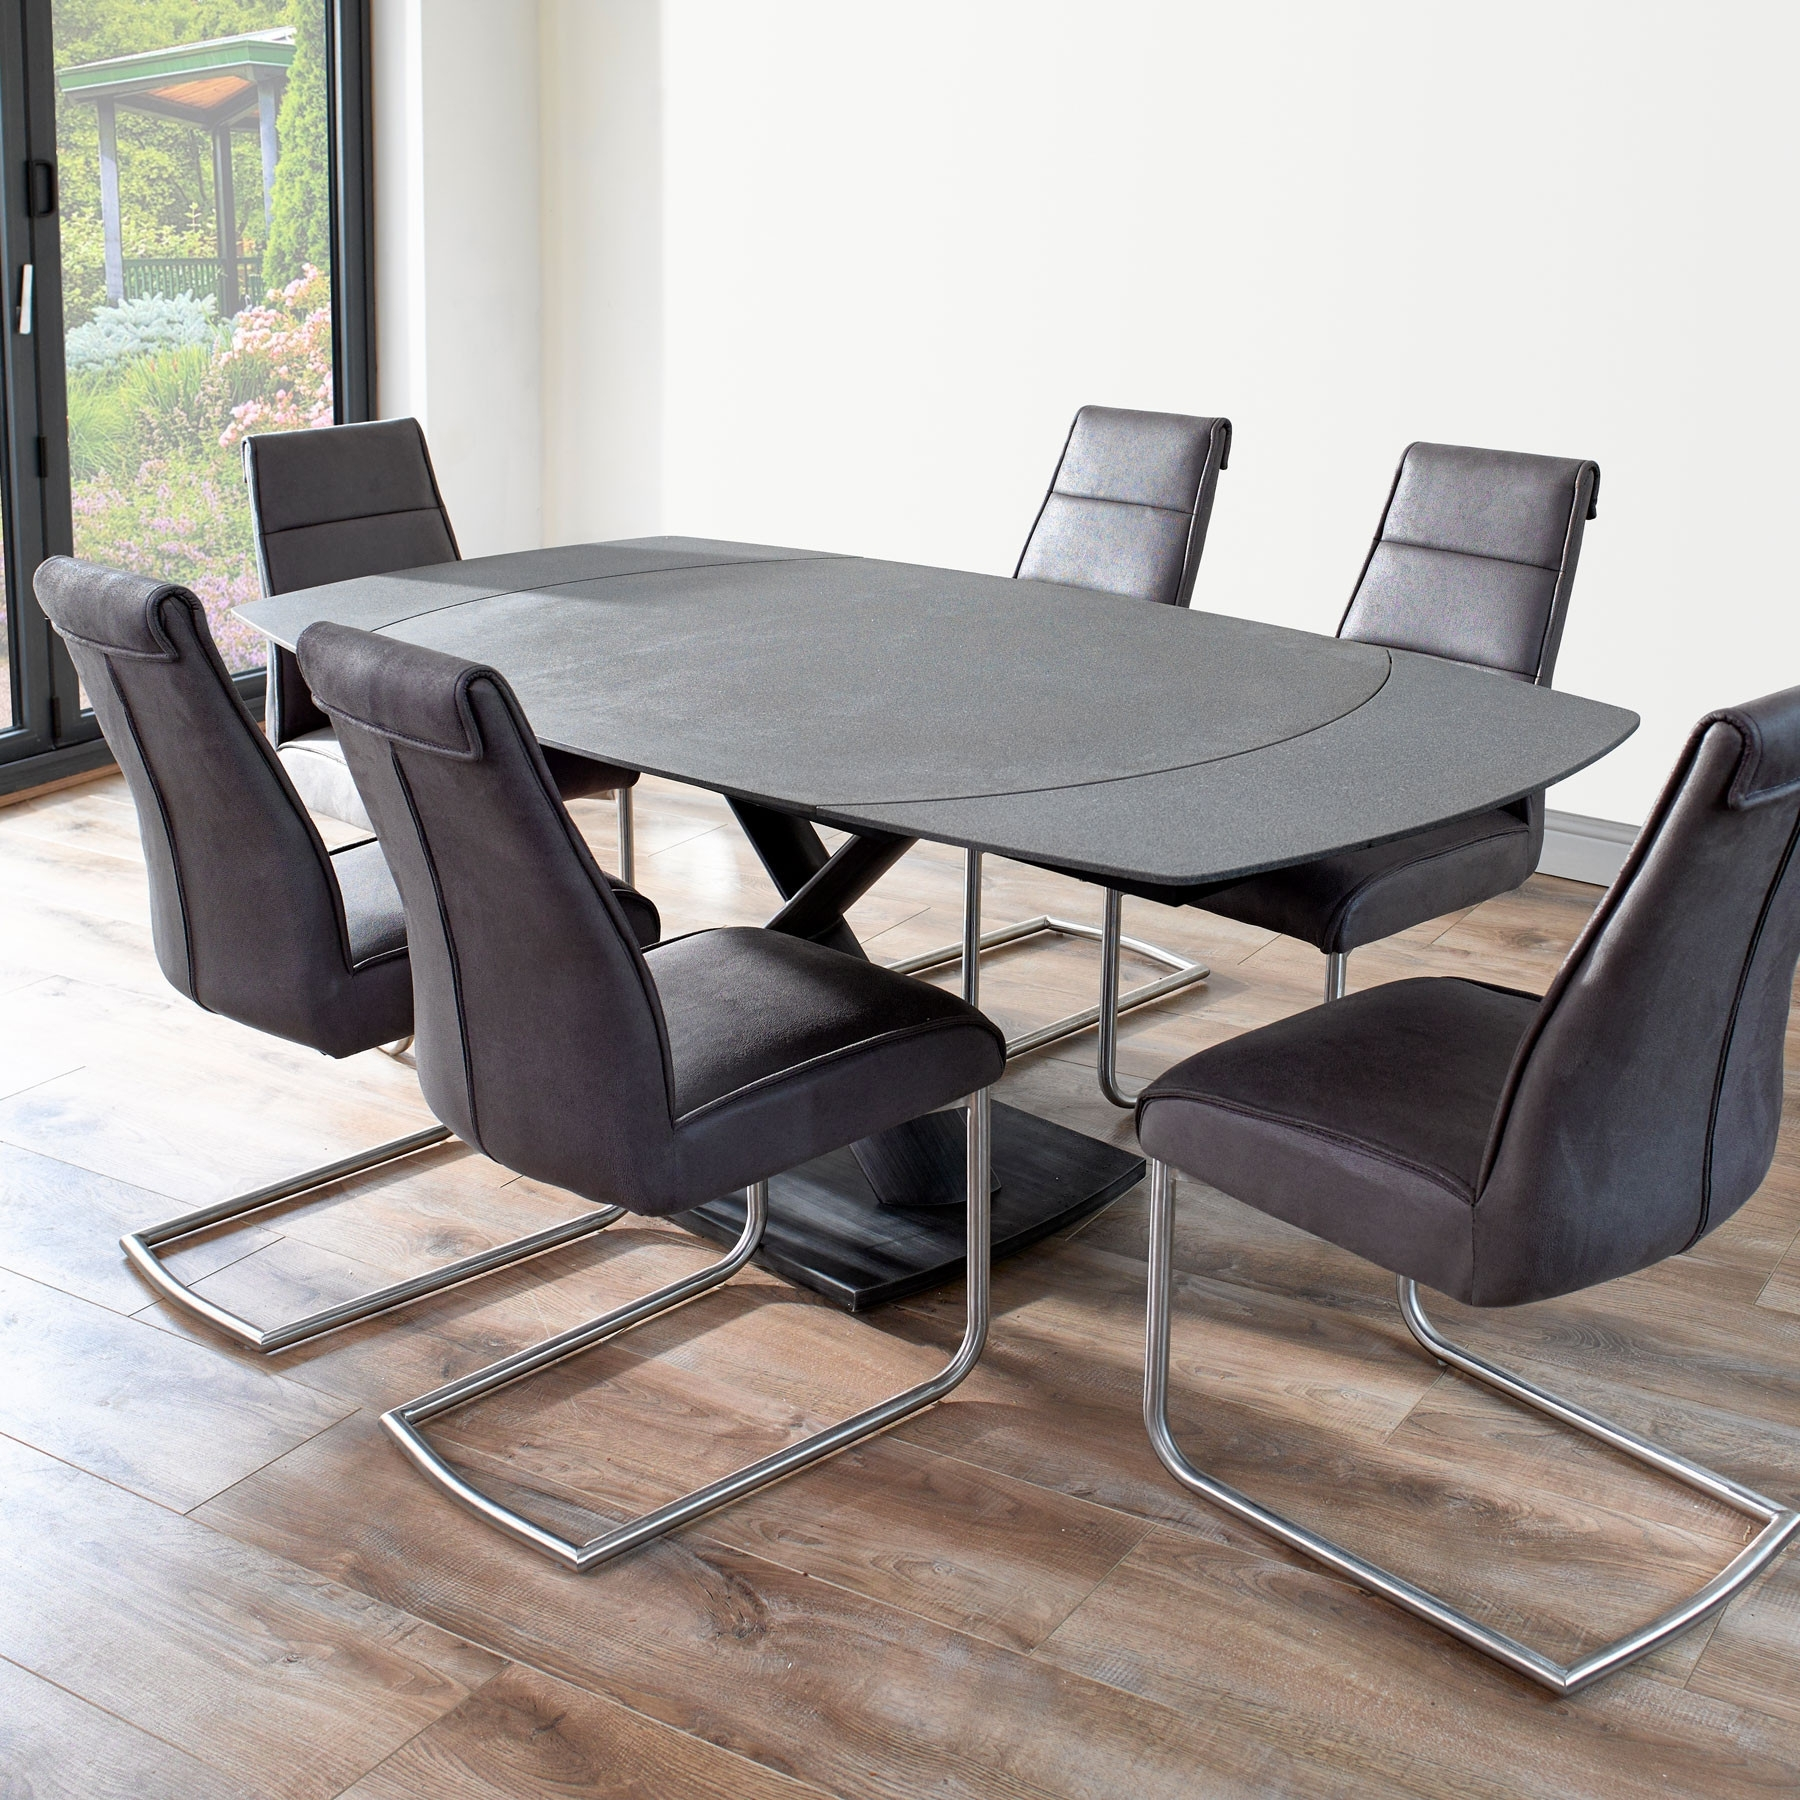 Domasco Revolving Extending Dining Table & 6 Chairs Intended For Most Recent Extendable Glass Dining Tables And 6 Chairs (View 6 of 25)